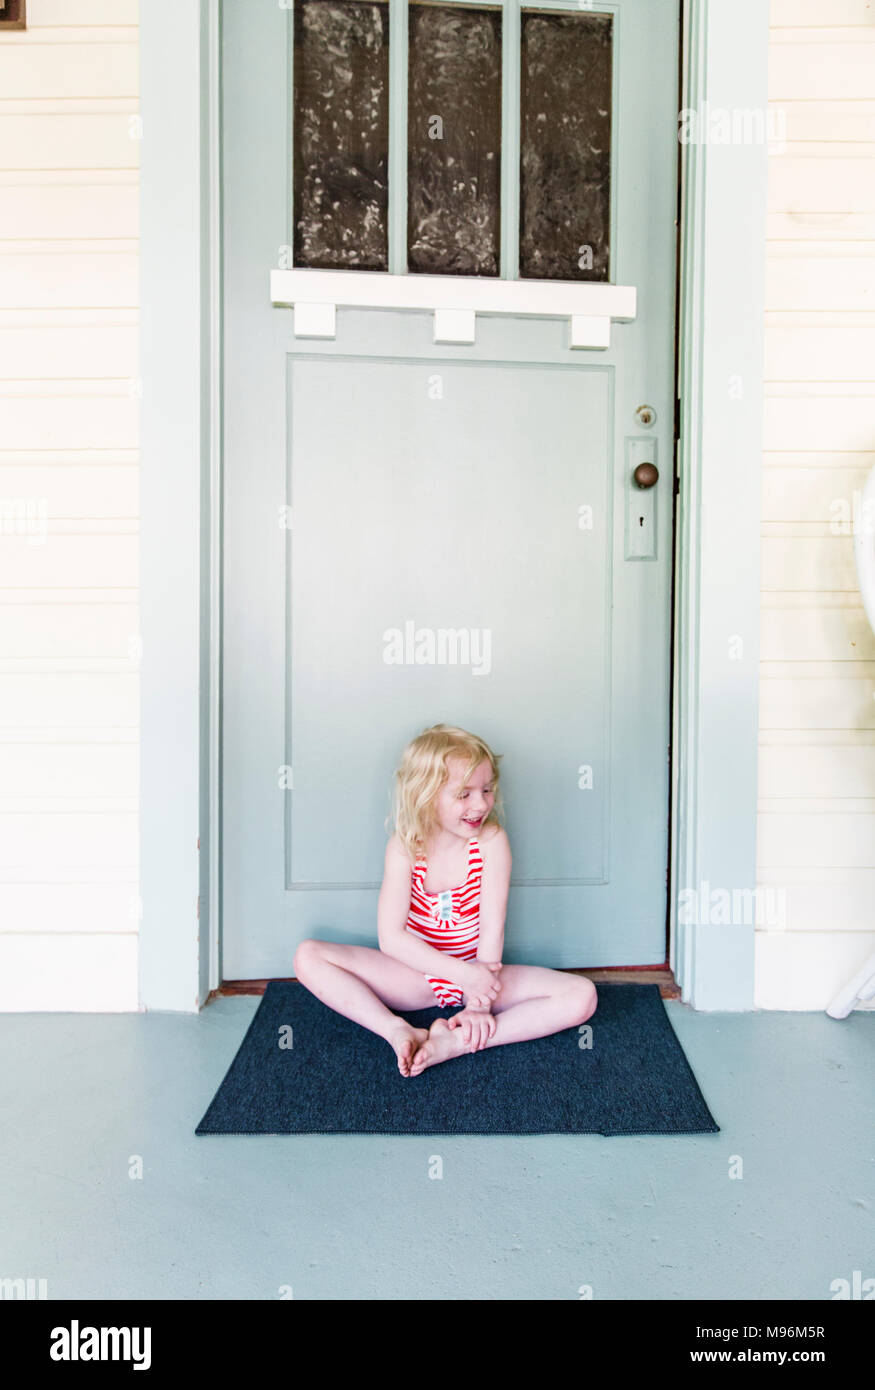 Girl smiling/sitting outside of door - Stock Image